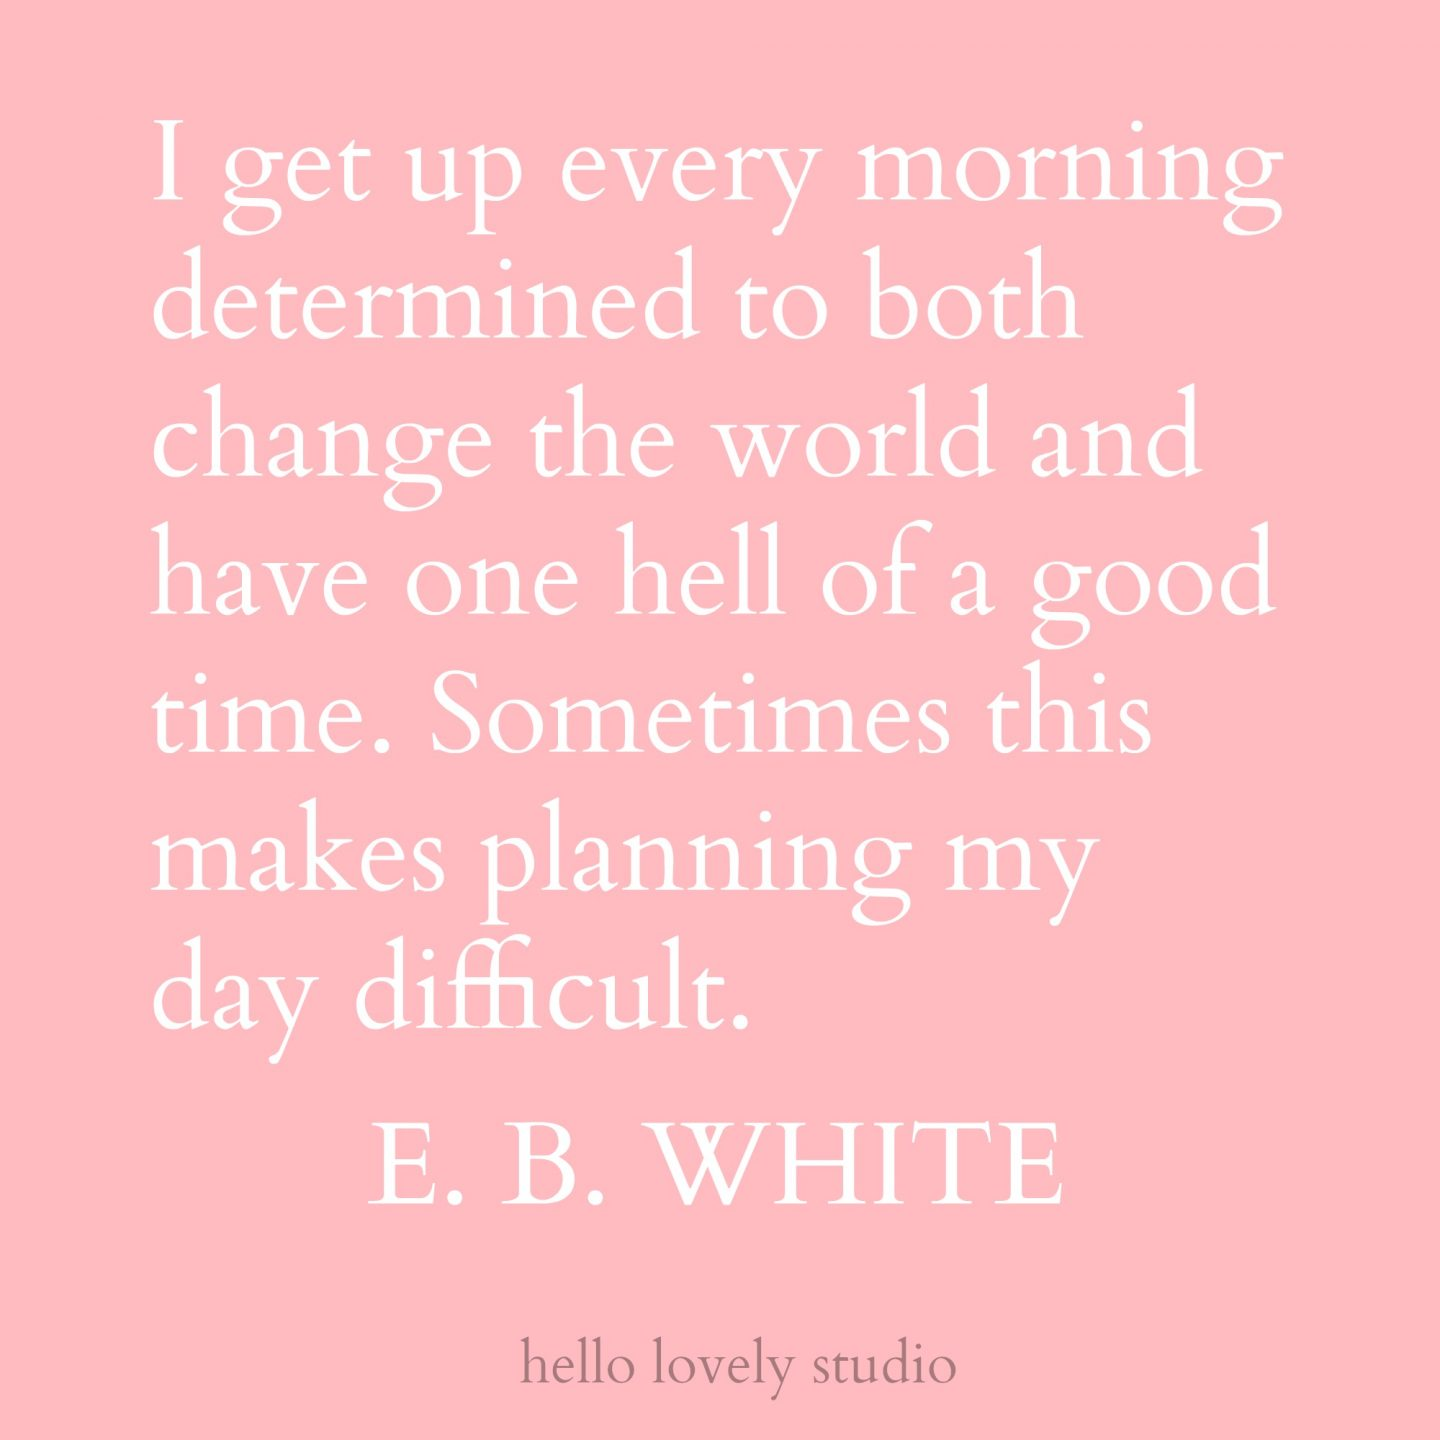 Inspiring and funny quote by E. B. White. I get up every morning determined to both change the world and have one hell of a good time. Sometimes this makes planning my day difficult. Hello Lovely Studio.